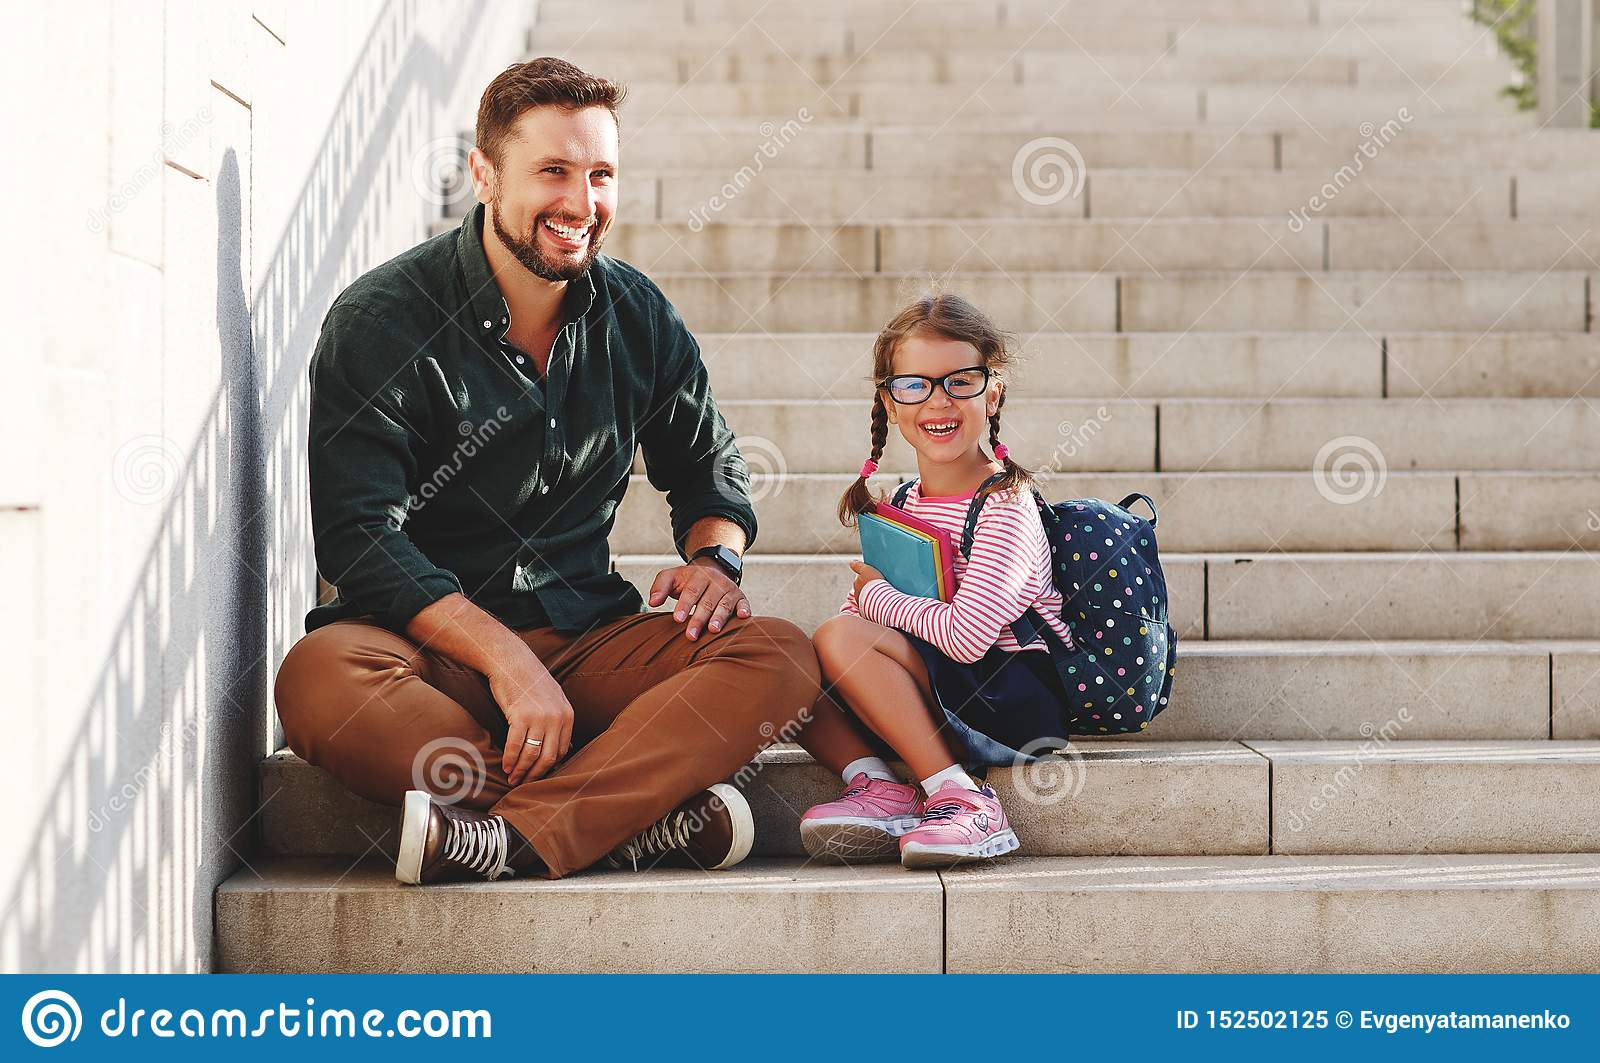 First day at school. father leads little child school girl in first grade